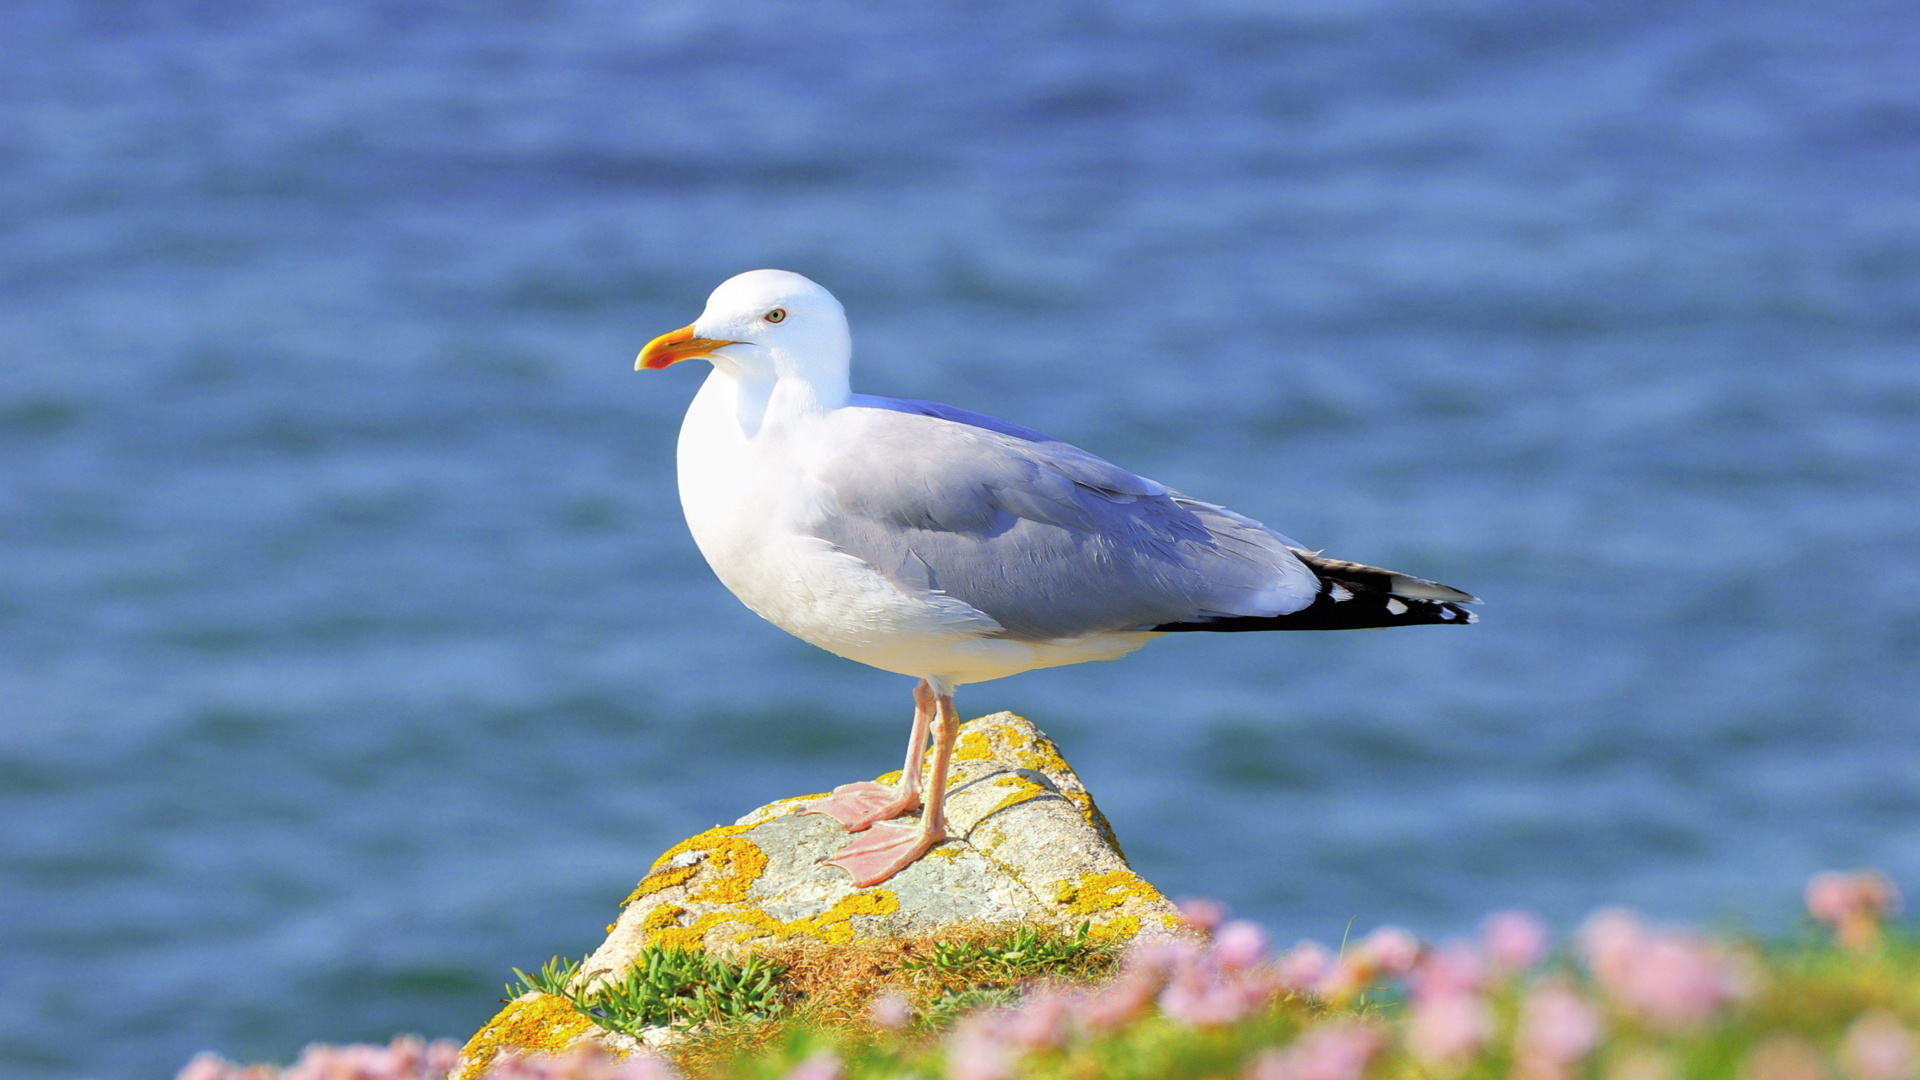 Seagull Wallpaper